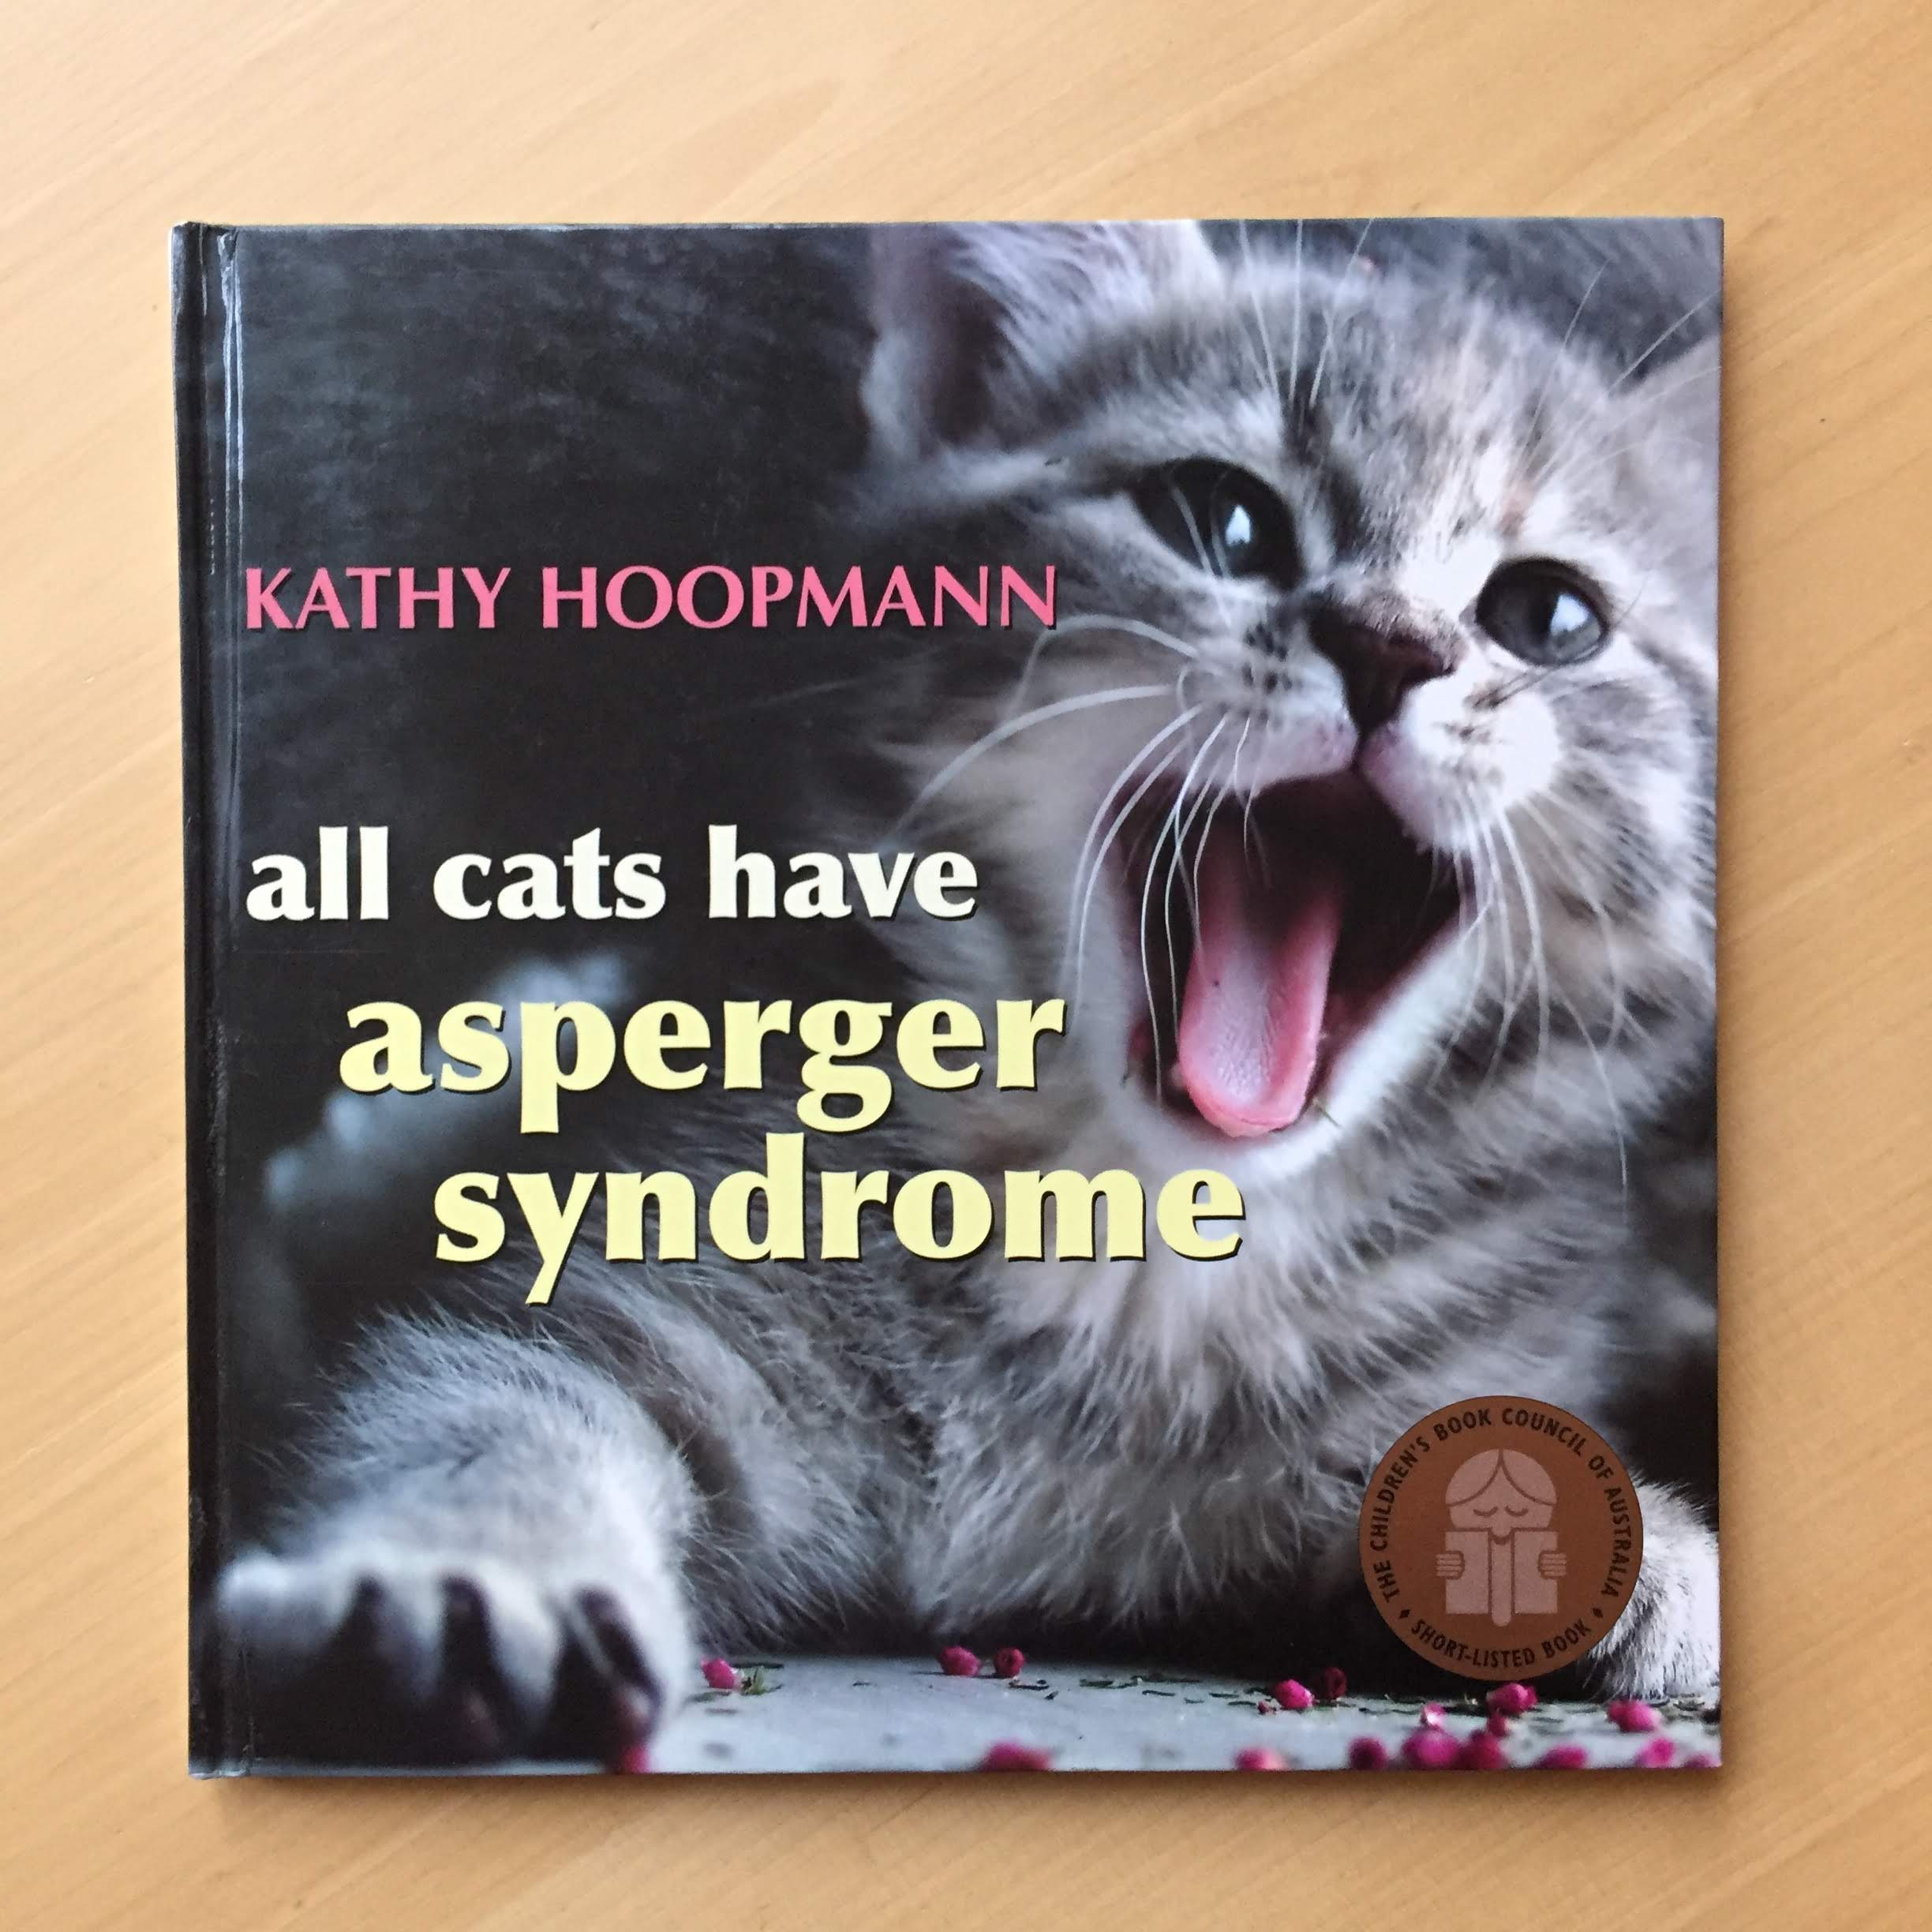 All Cats have Asperger syndrome af K. Hoopman 50 kr.